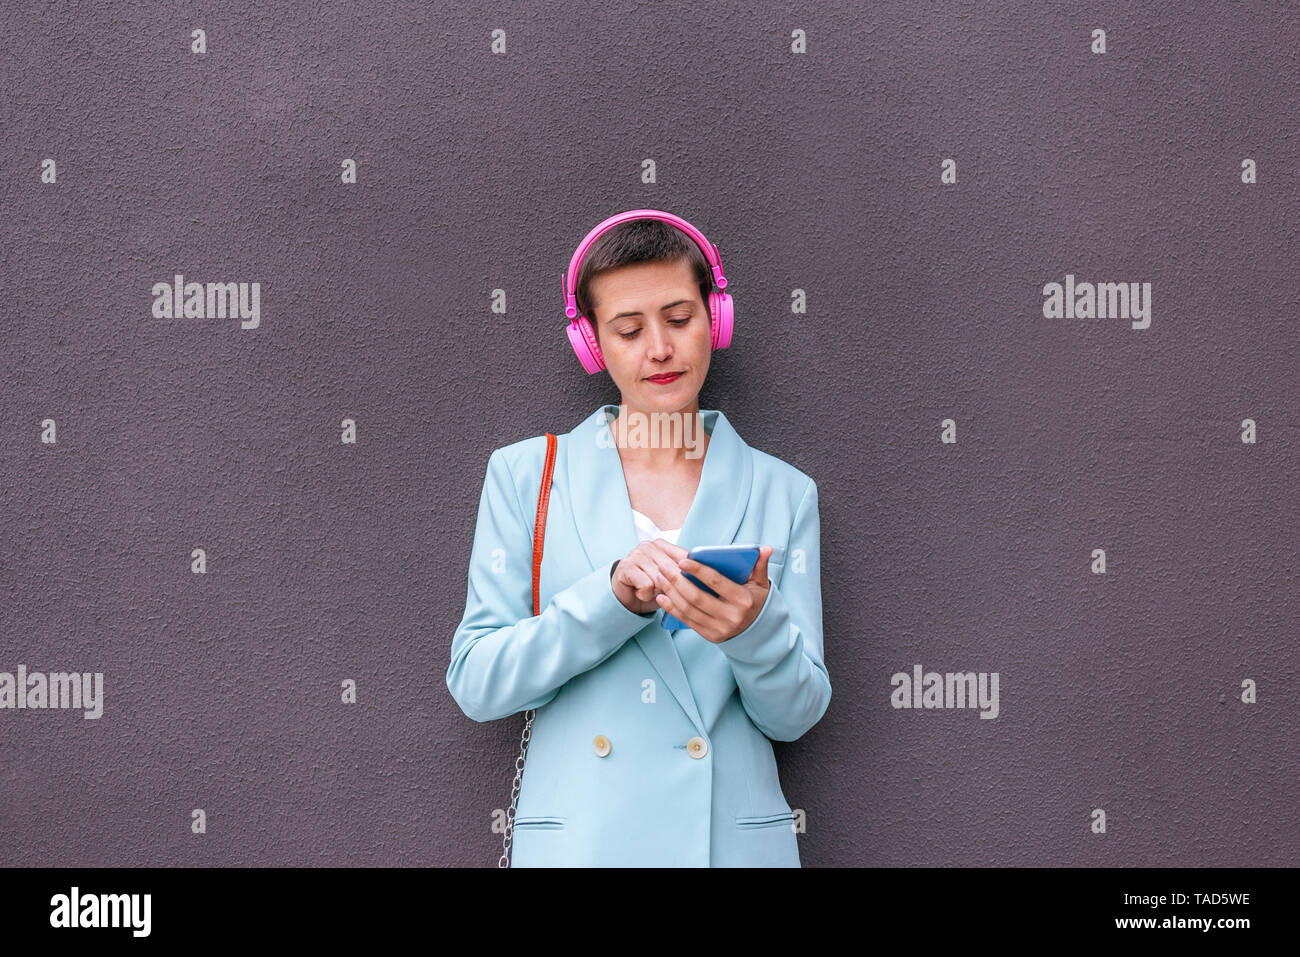 Woman dressed in jacket listening to music with her mobile phone - Stock Image